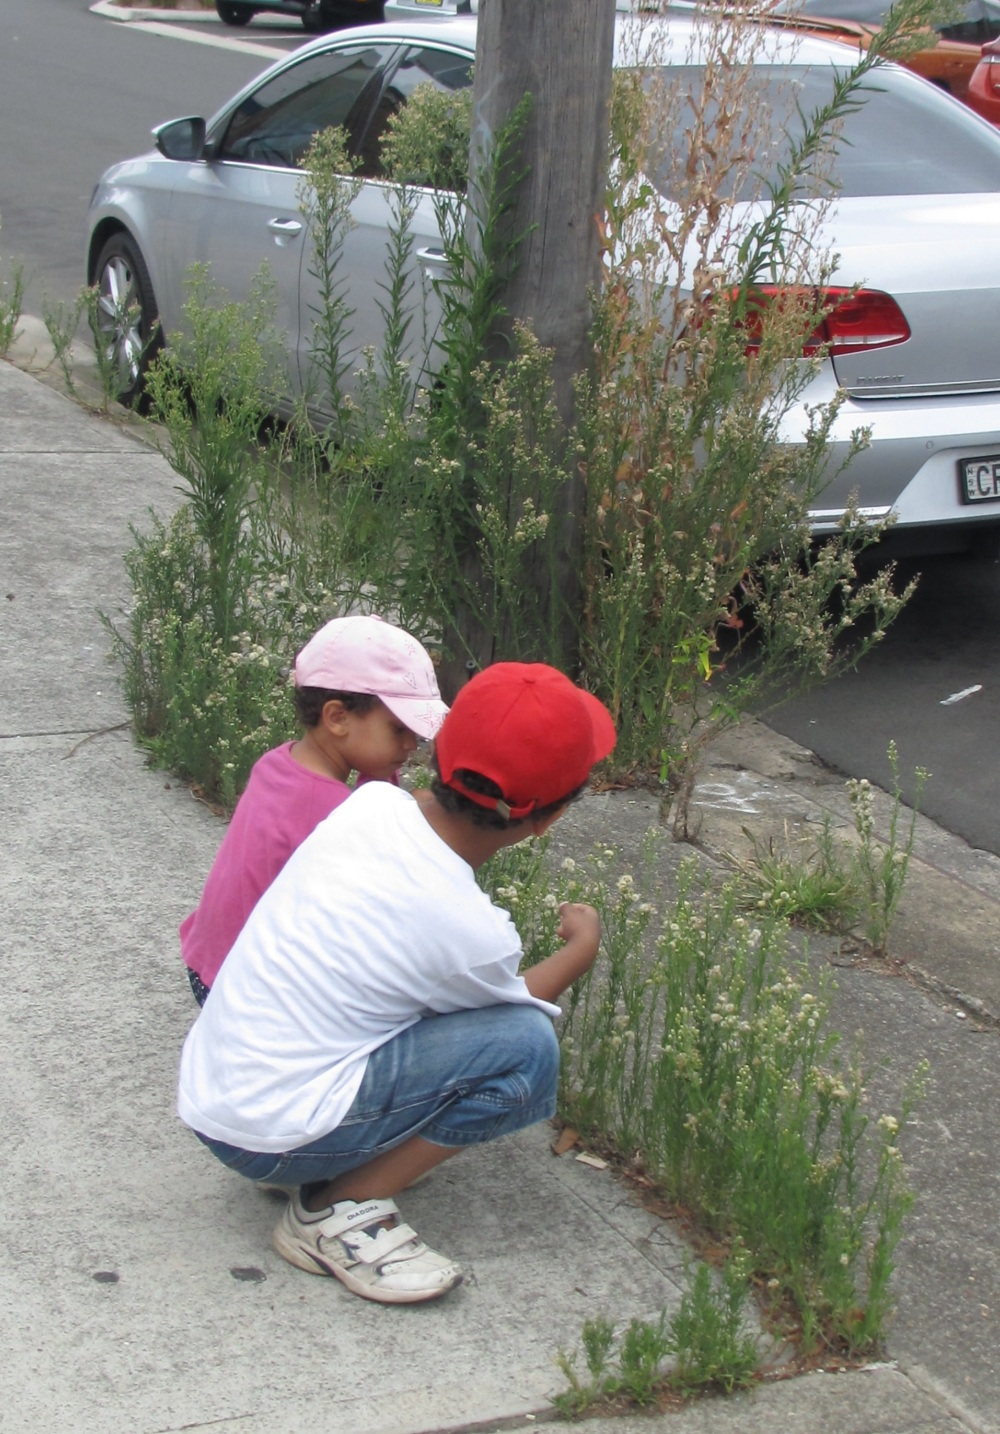 Anderson Ave 'weeds'